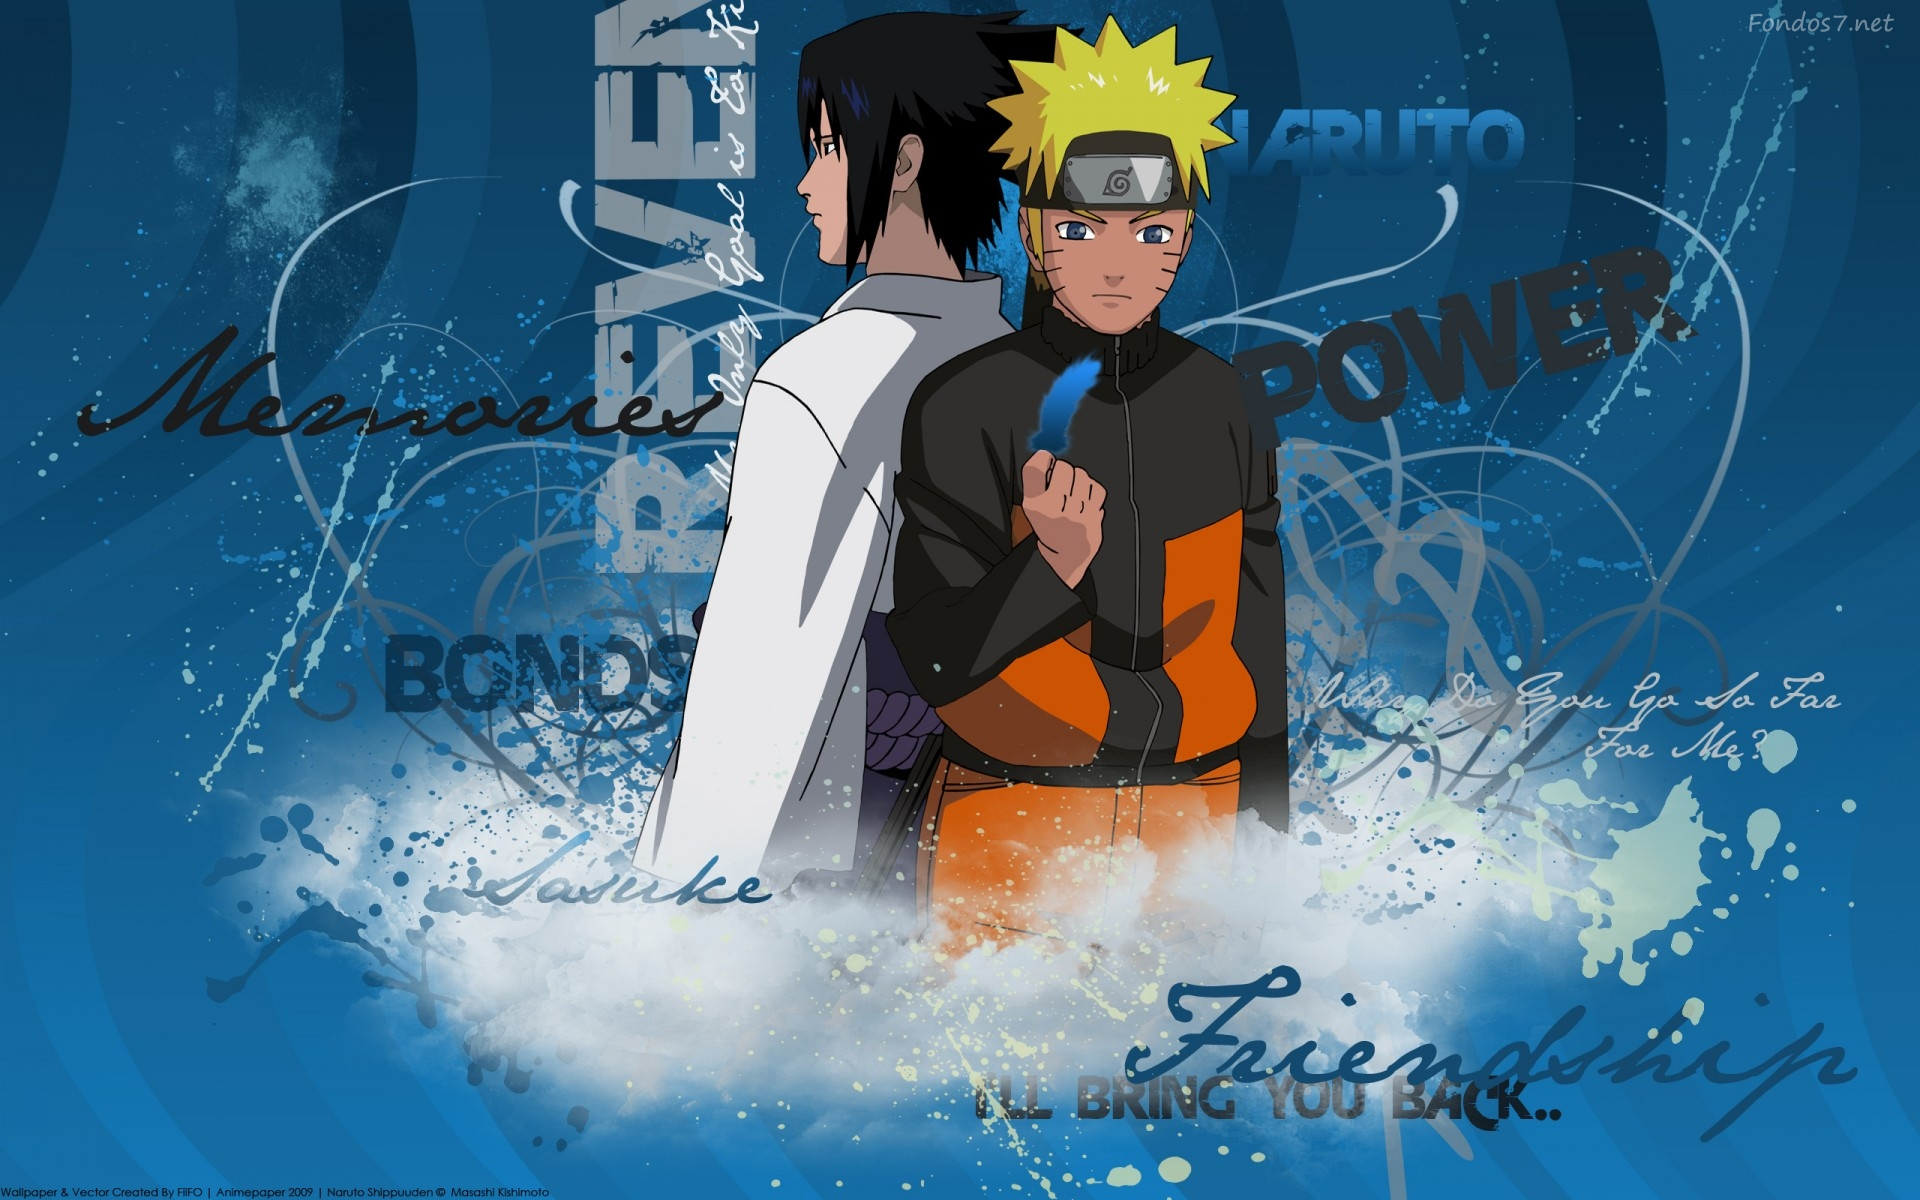 Best Wallpaper Naruto Windows 10 - lxdm2E  Picture.jpg